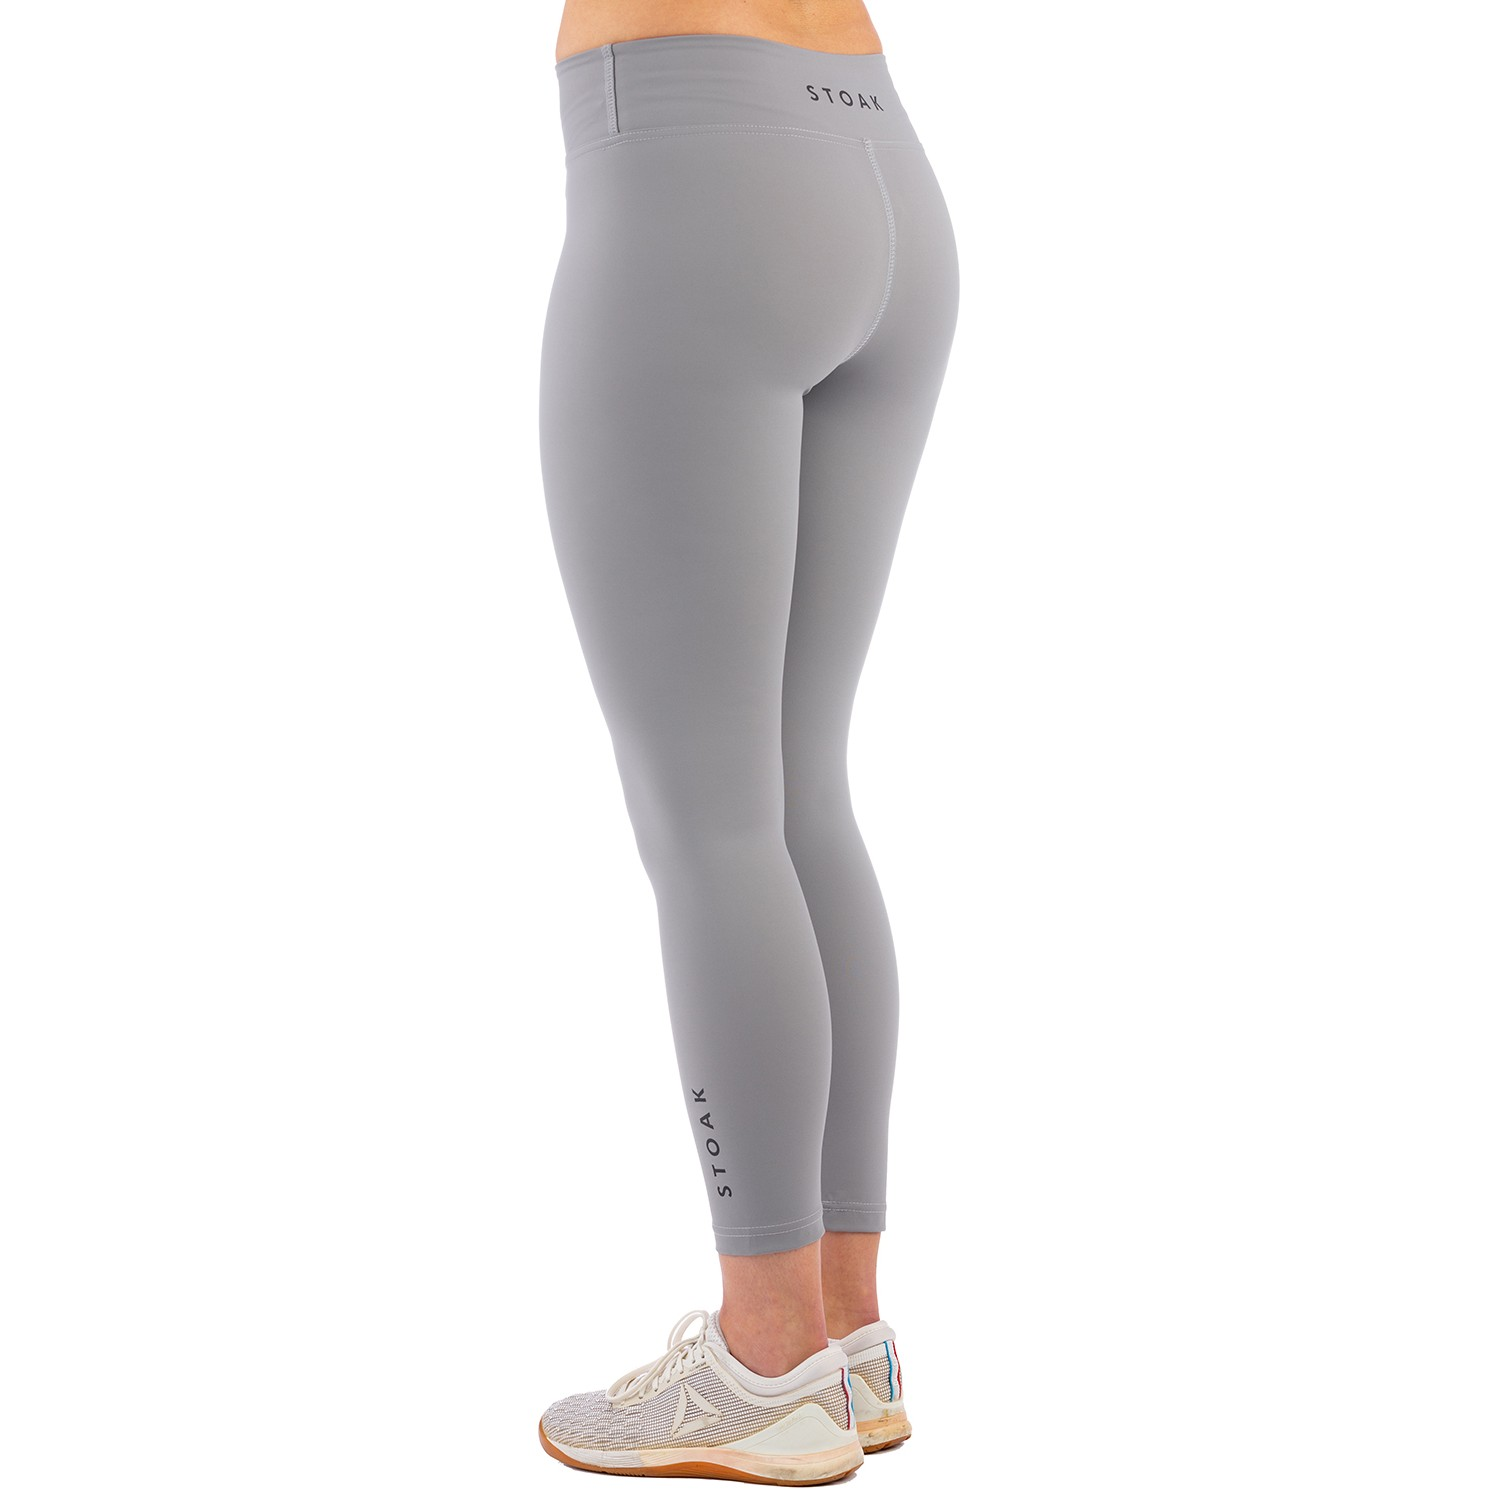 STOAK ROCK Performance Leggings